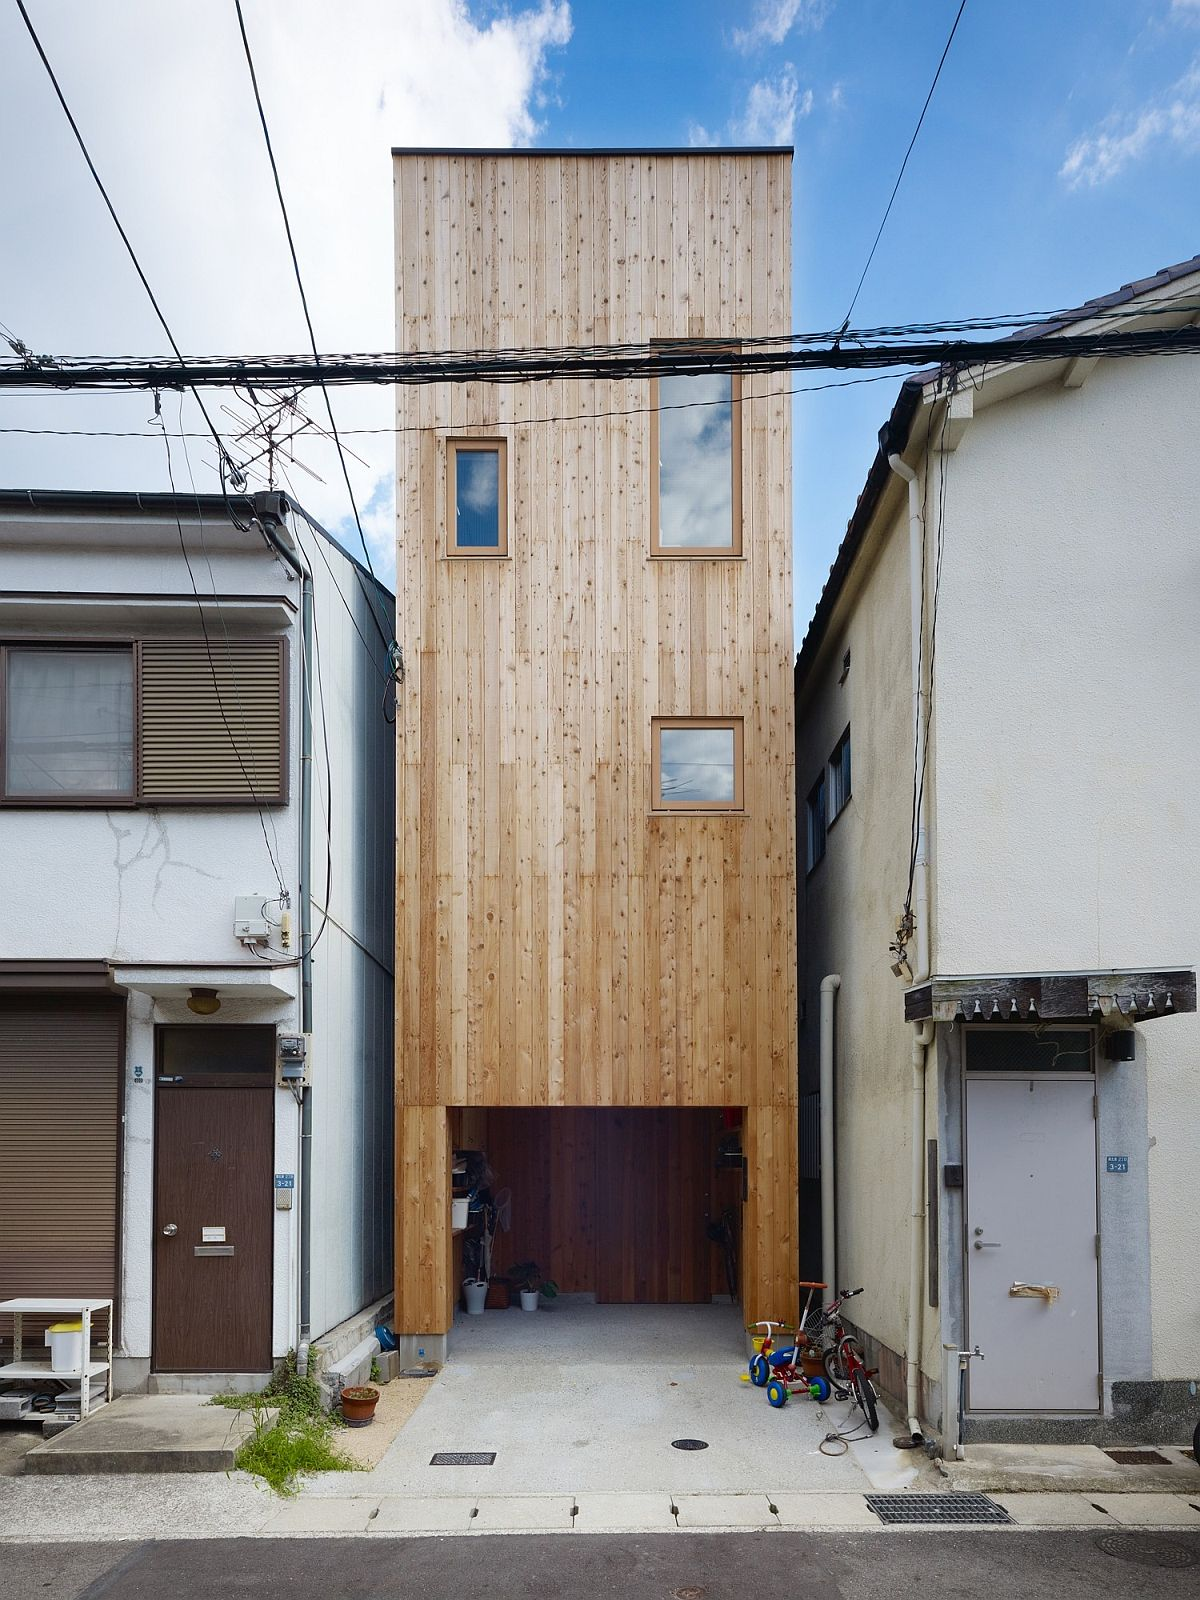 Narrow, multi-level home in Japan with an exterior draped in wood